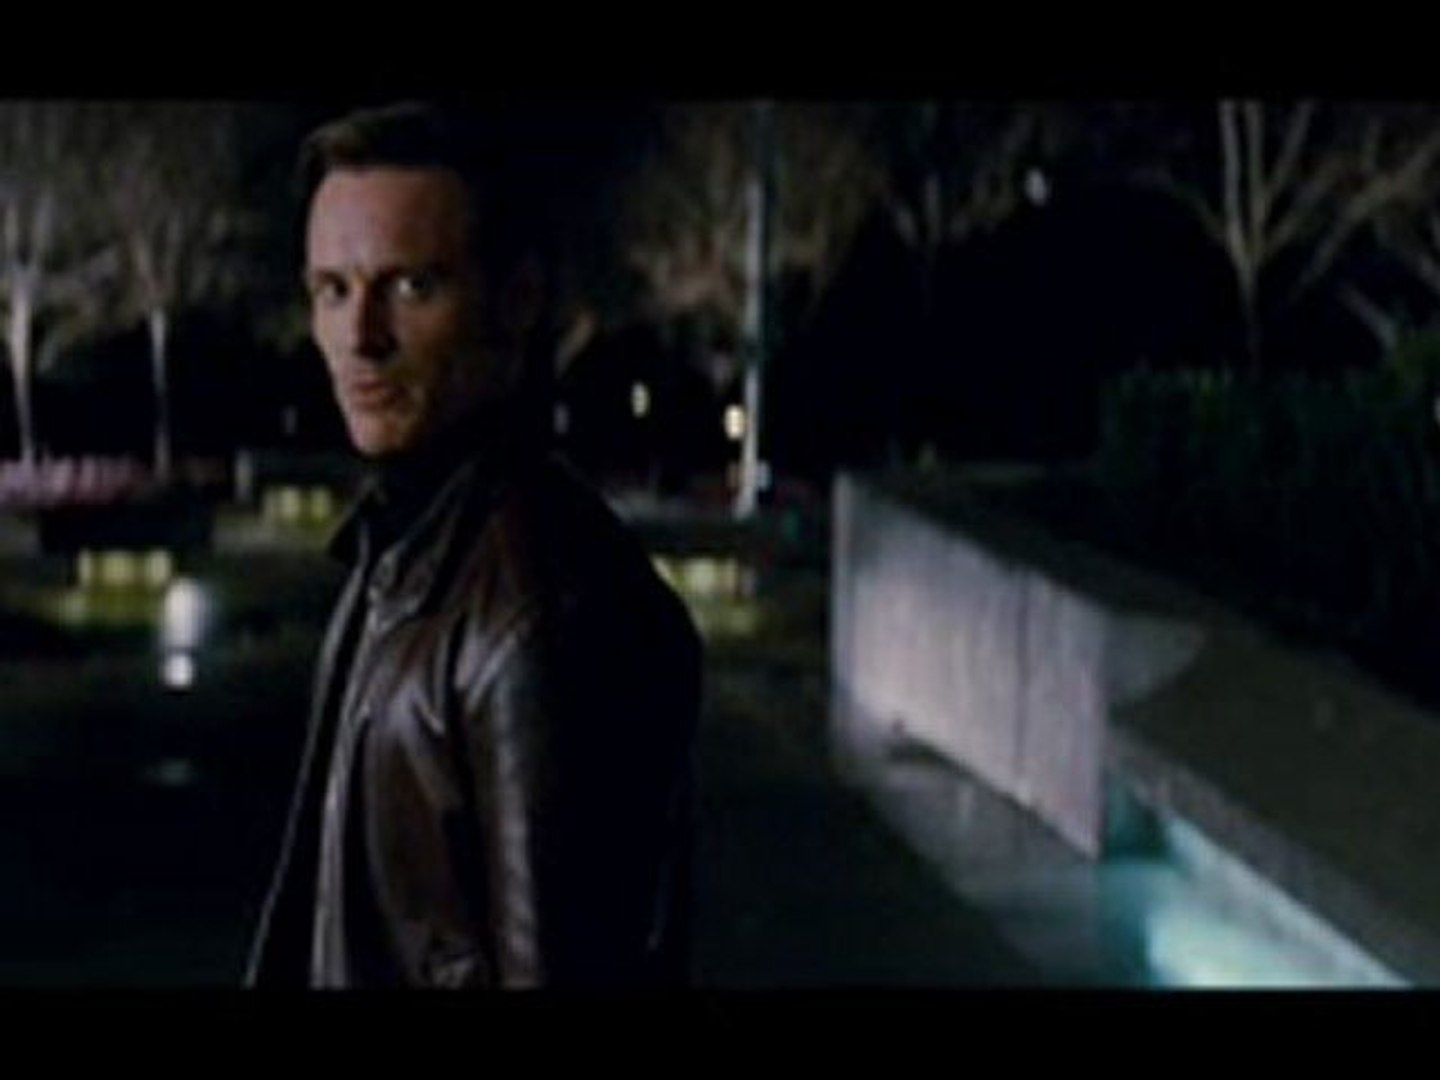 watch x-men first class full movie hd megavideo trailers download 2011 movie entertaining movie movi